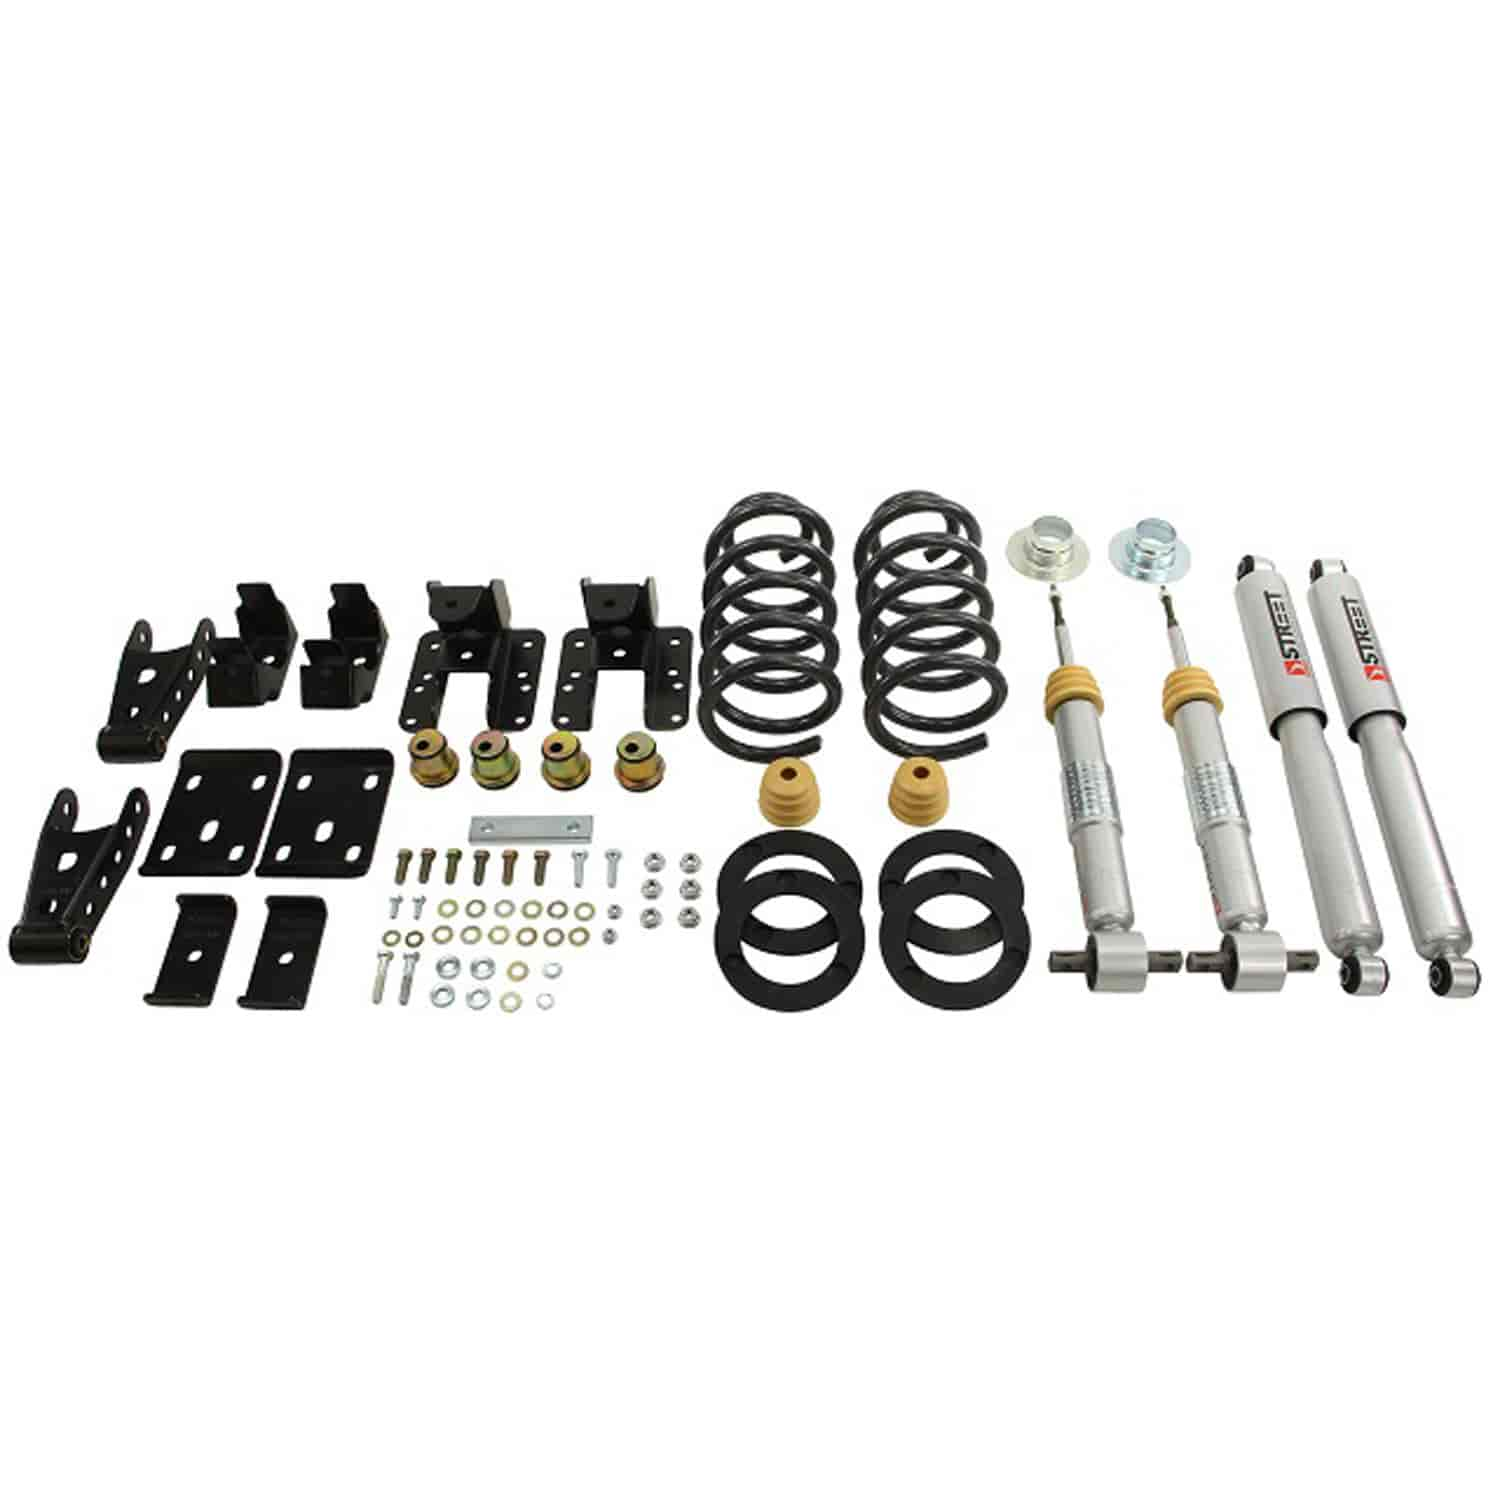 Belltech 987SP: Complete Lowering Kit for 2014-2015 Chevy